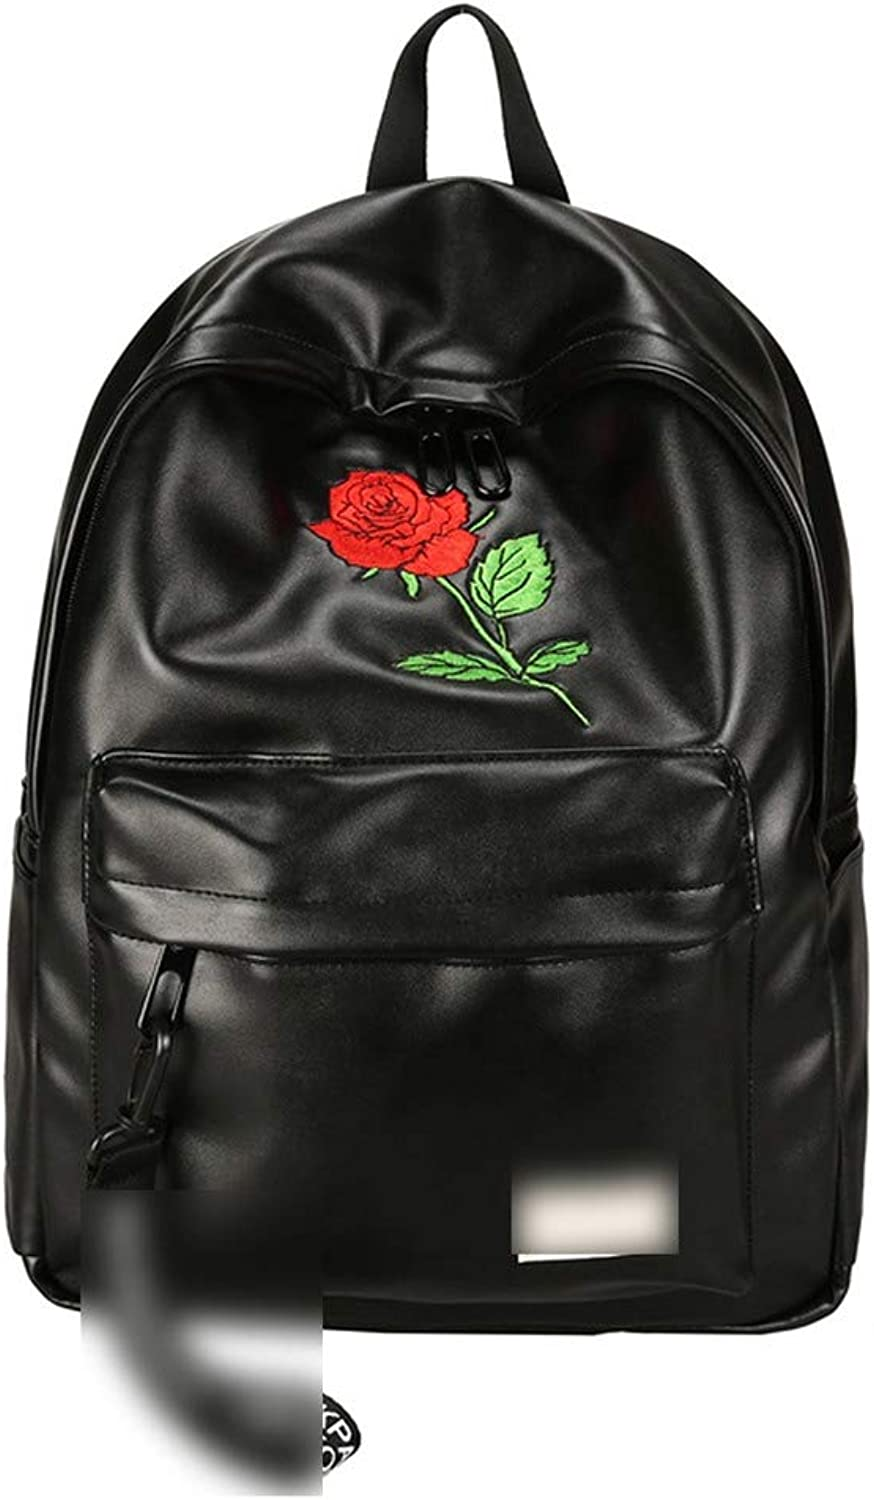 Unisex Pu Leather Backpack Women Embroidery Rose Backpack Lovers Men's Leather Backpack